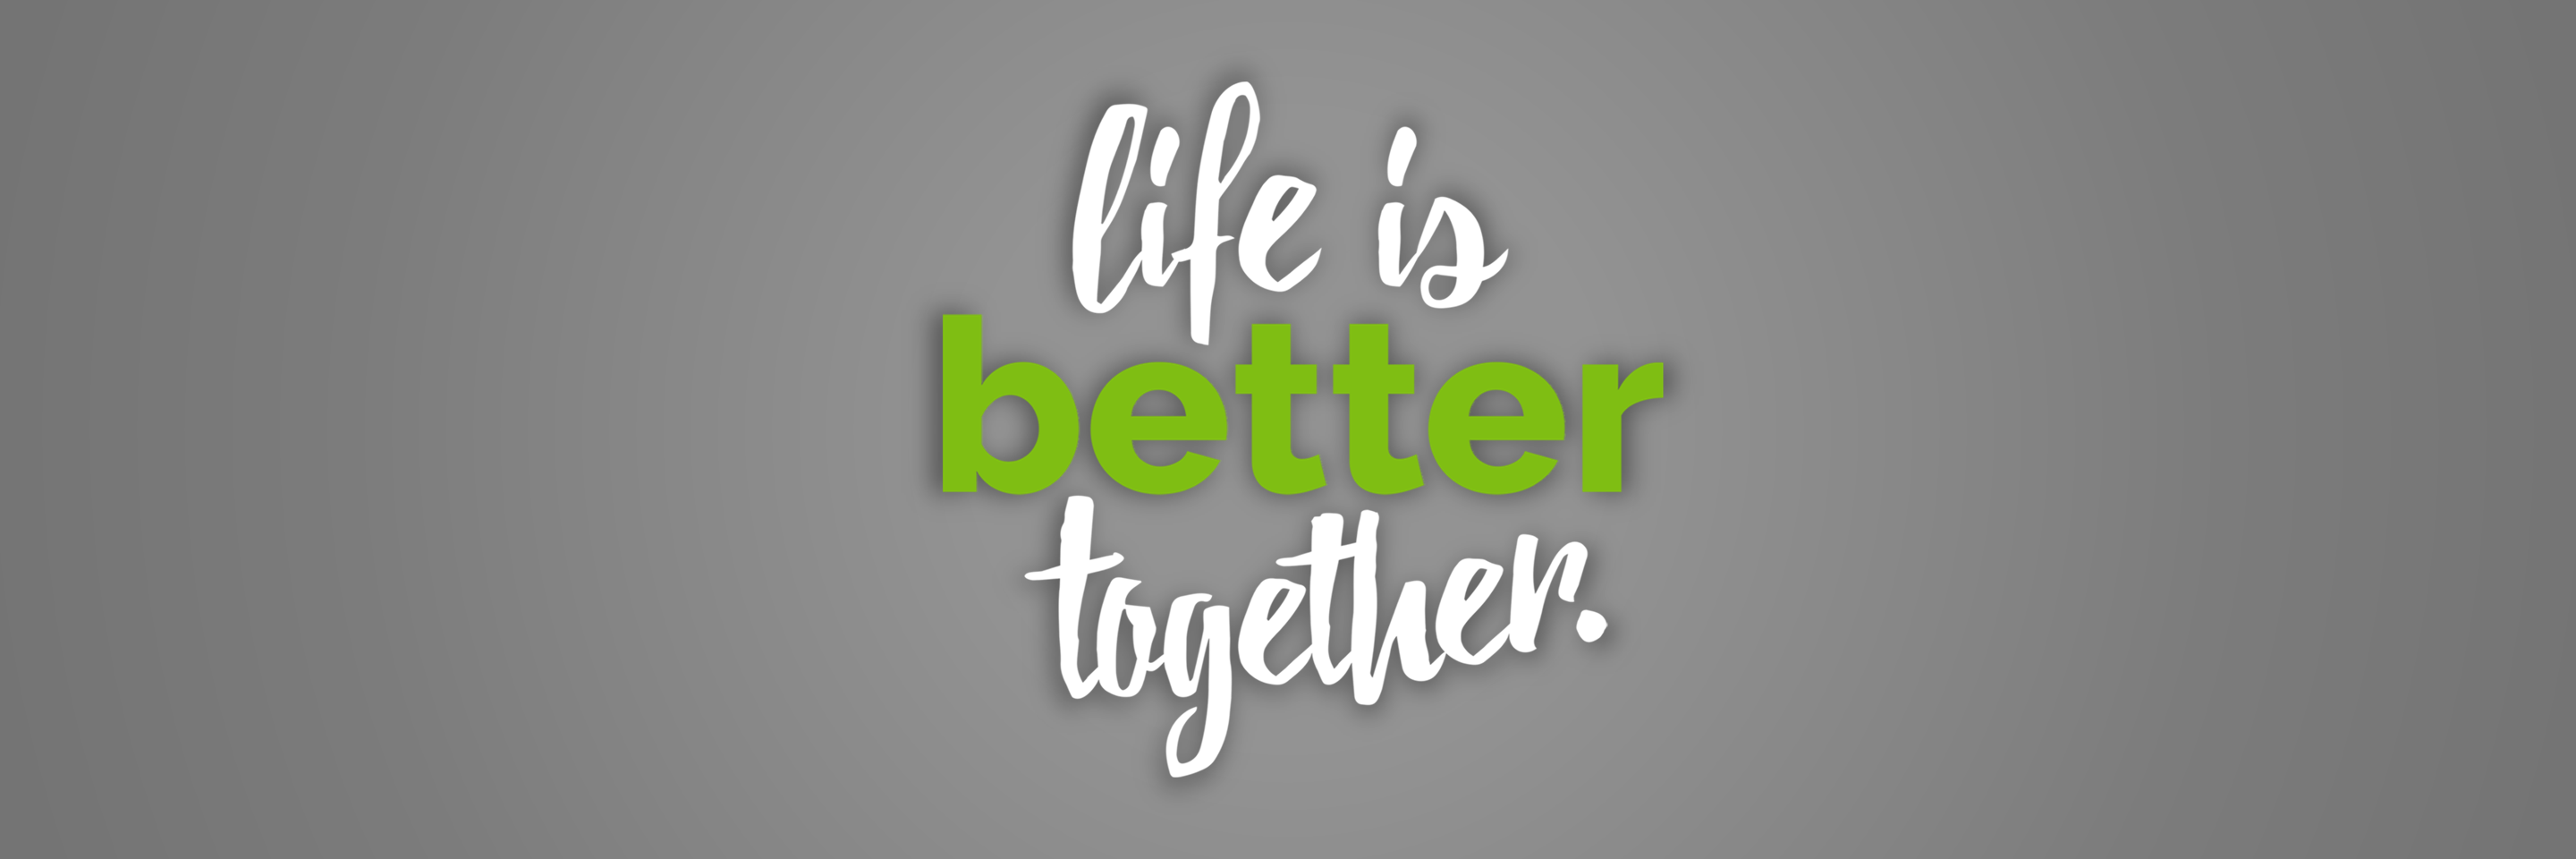 Life is Better Together: Part 3